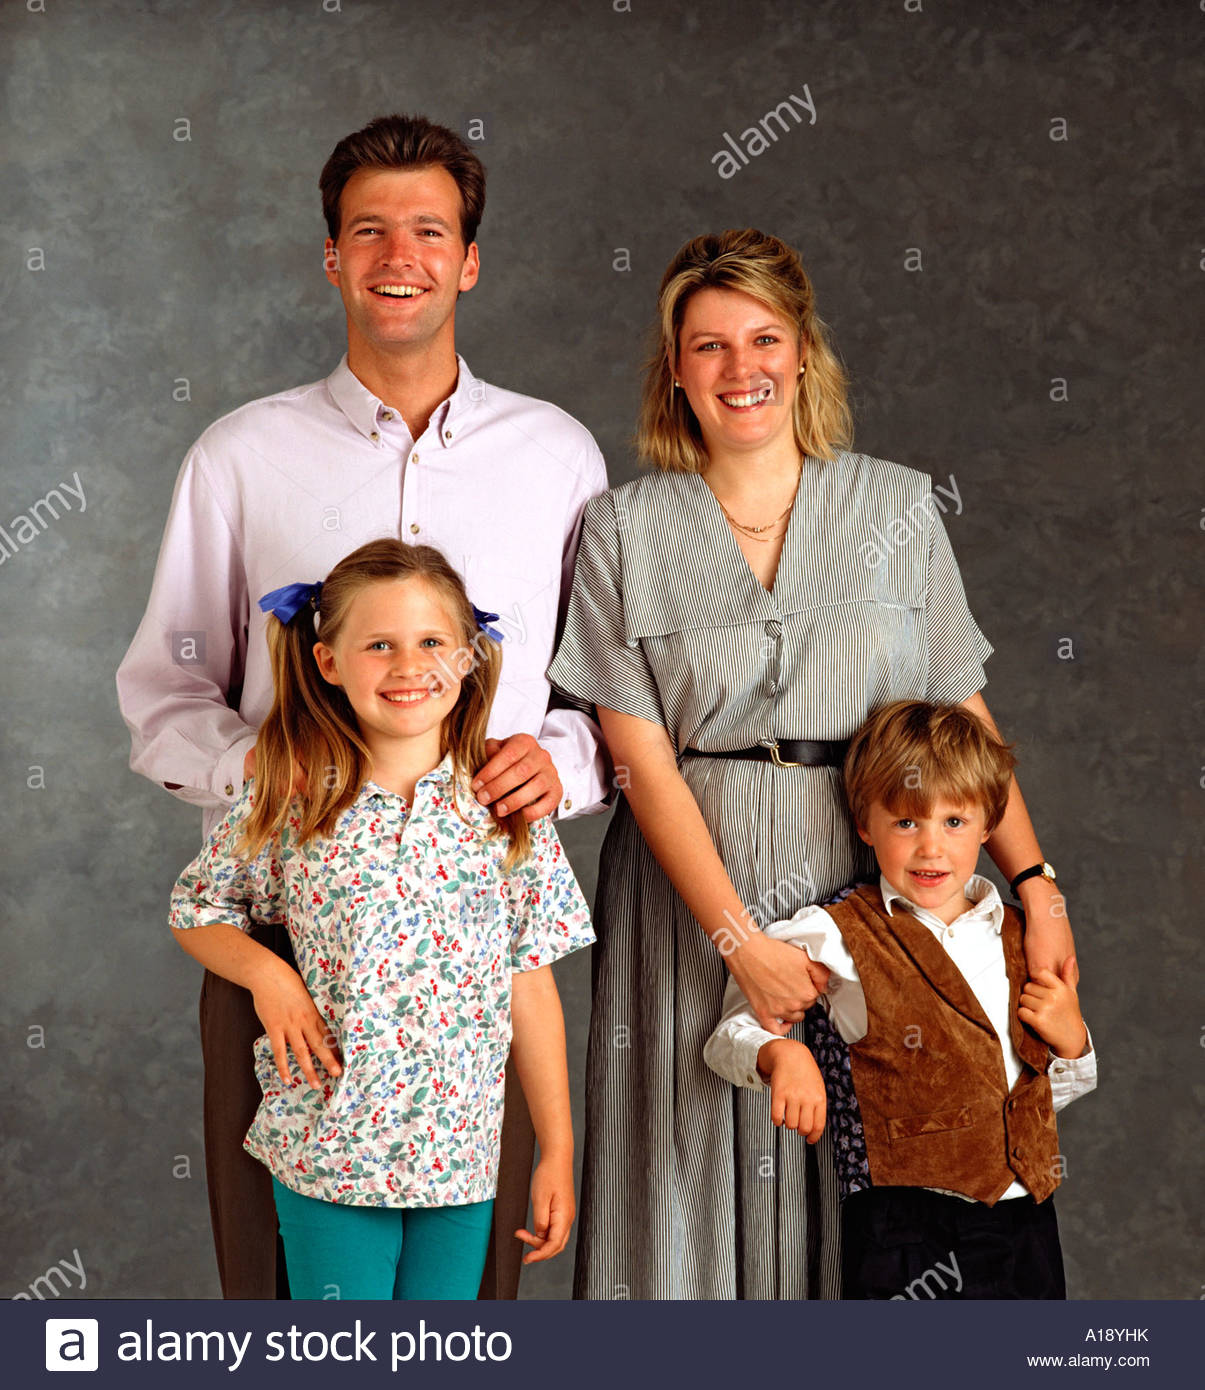 white middle class nuclear family posing for studio photo stock